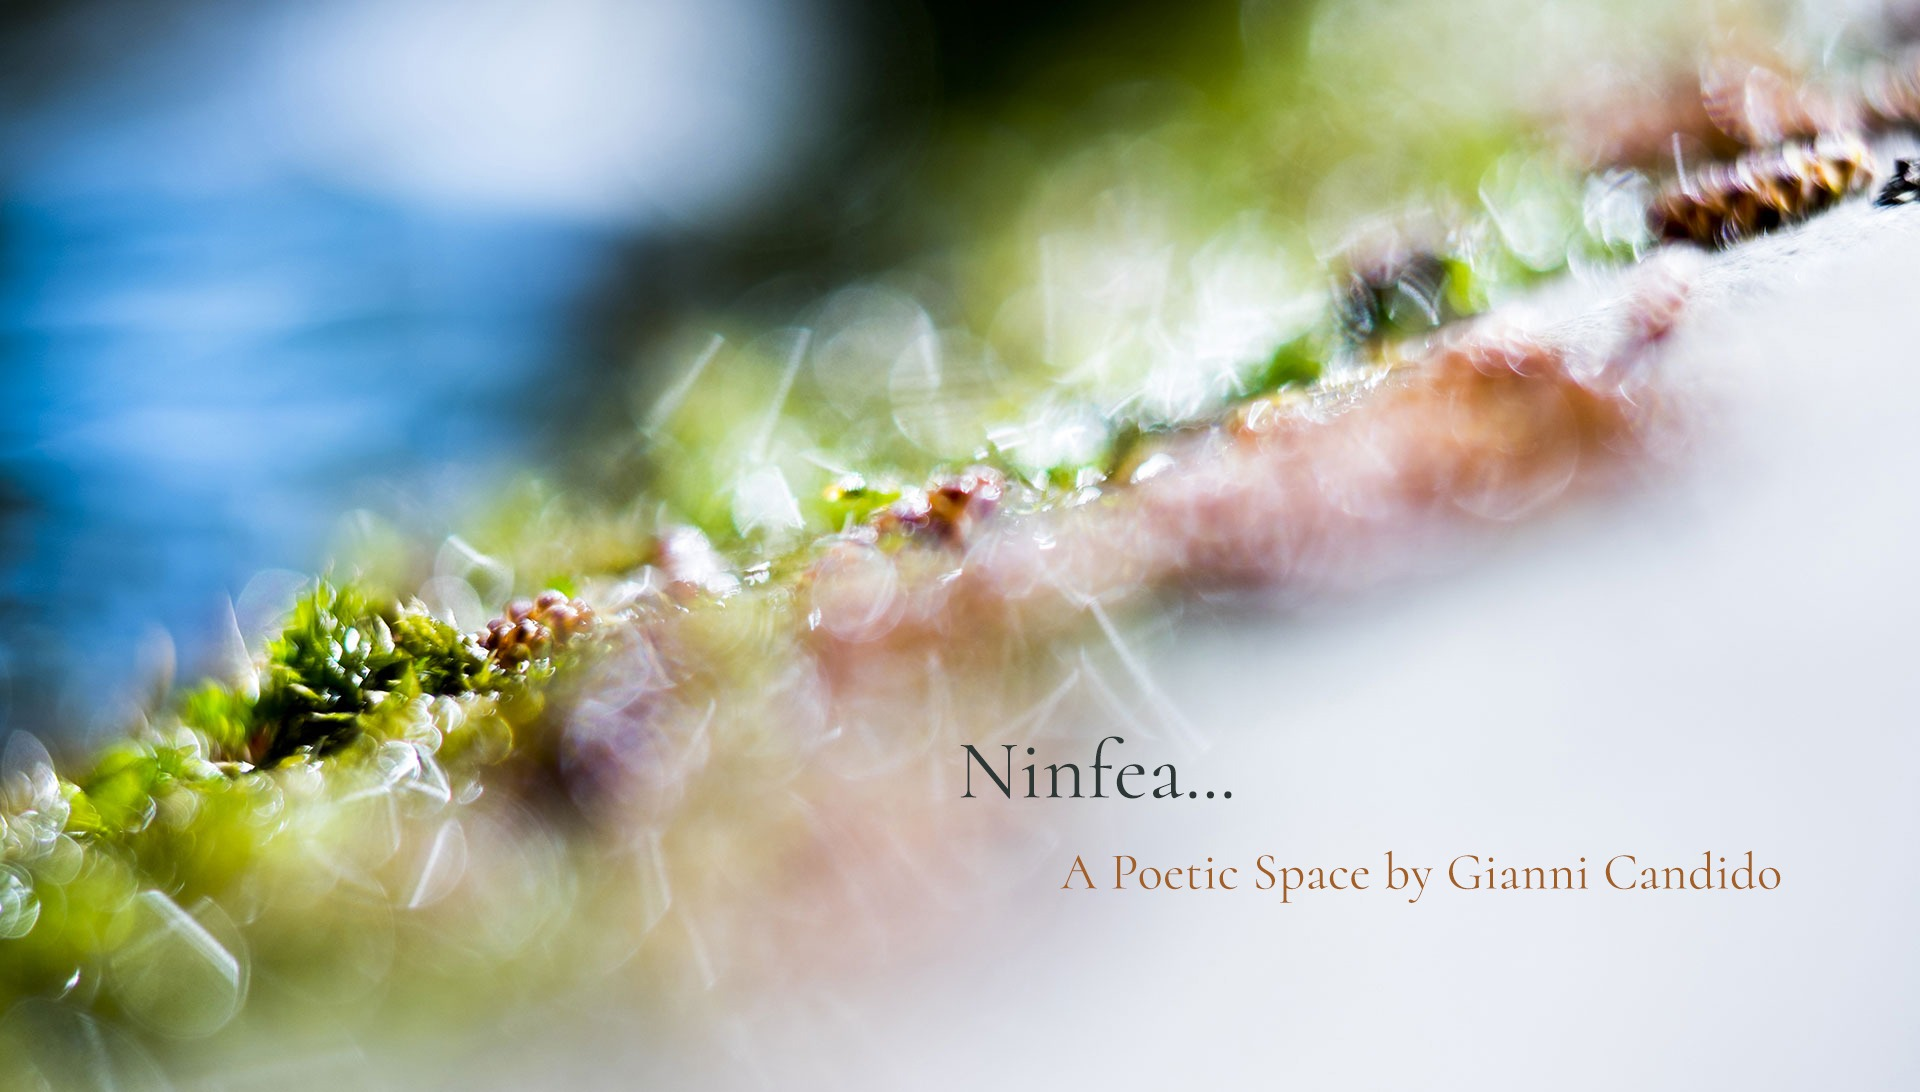 Ninfea - A Poetic Space by Gianni Candido